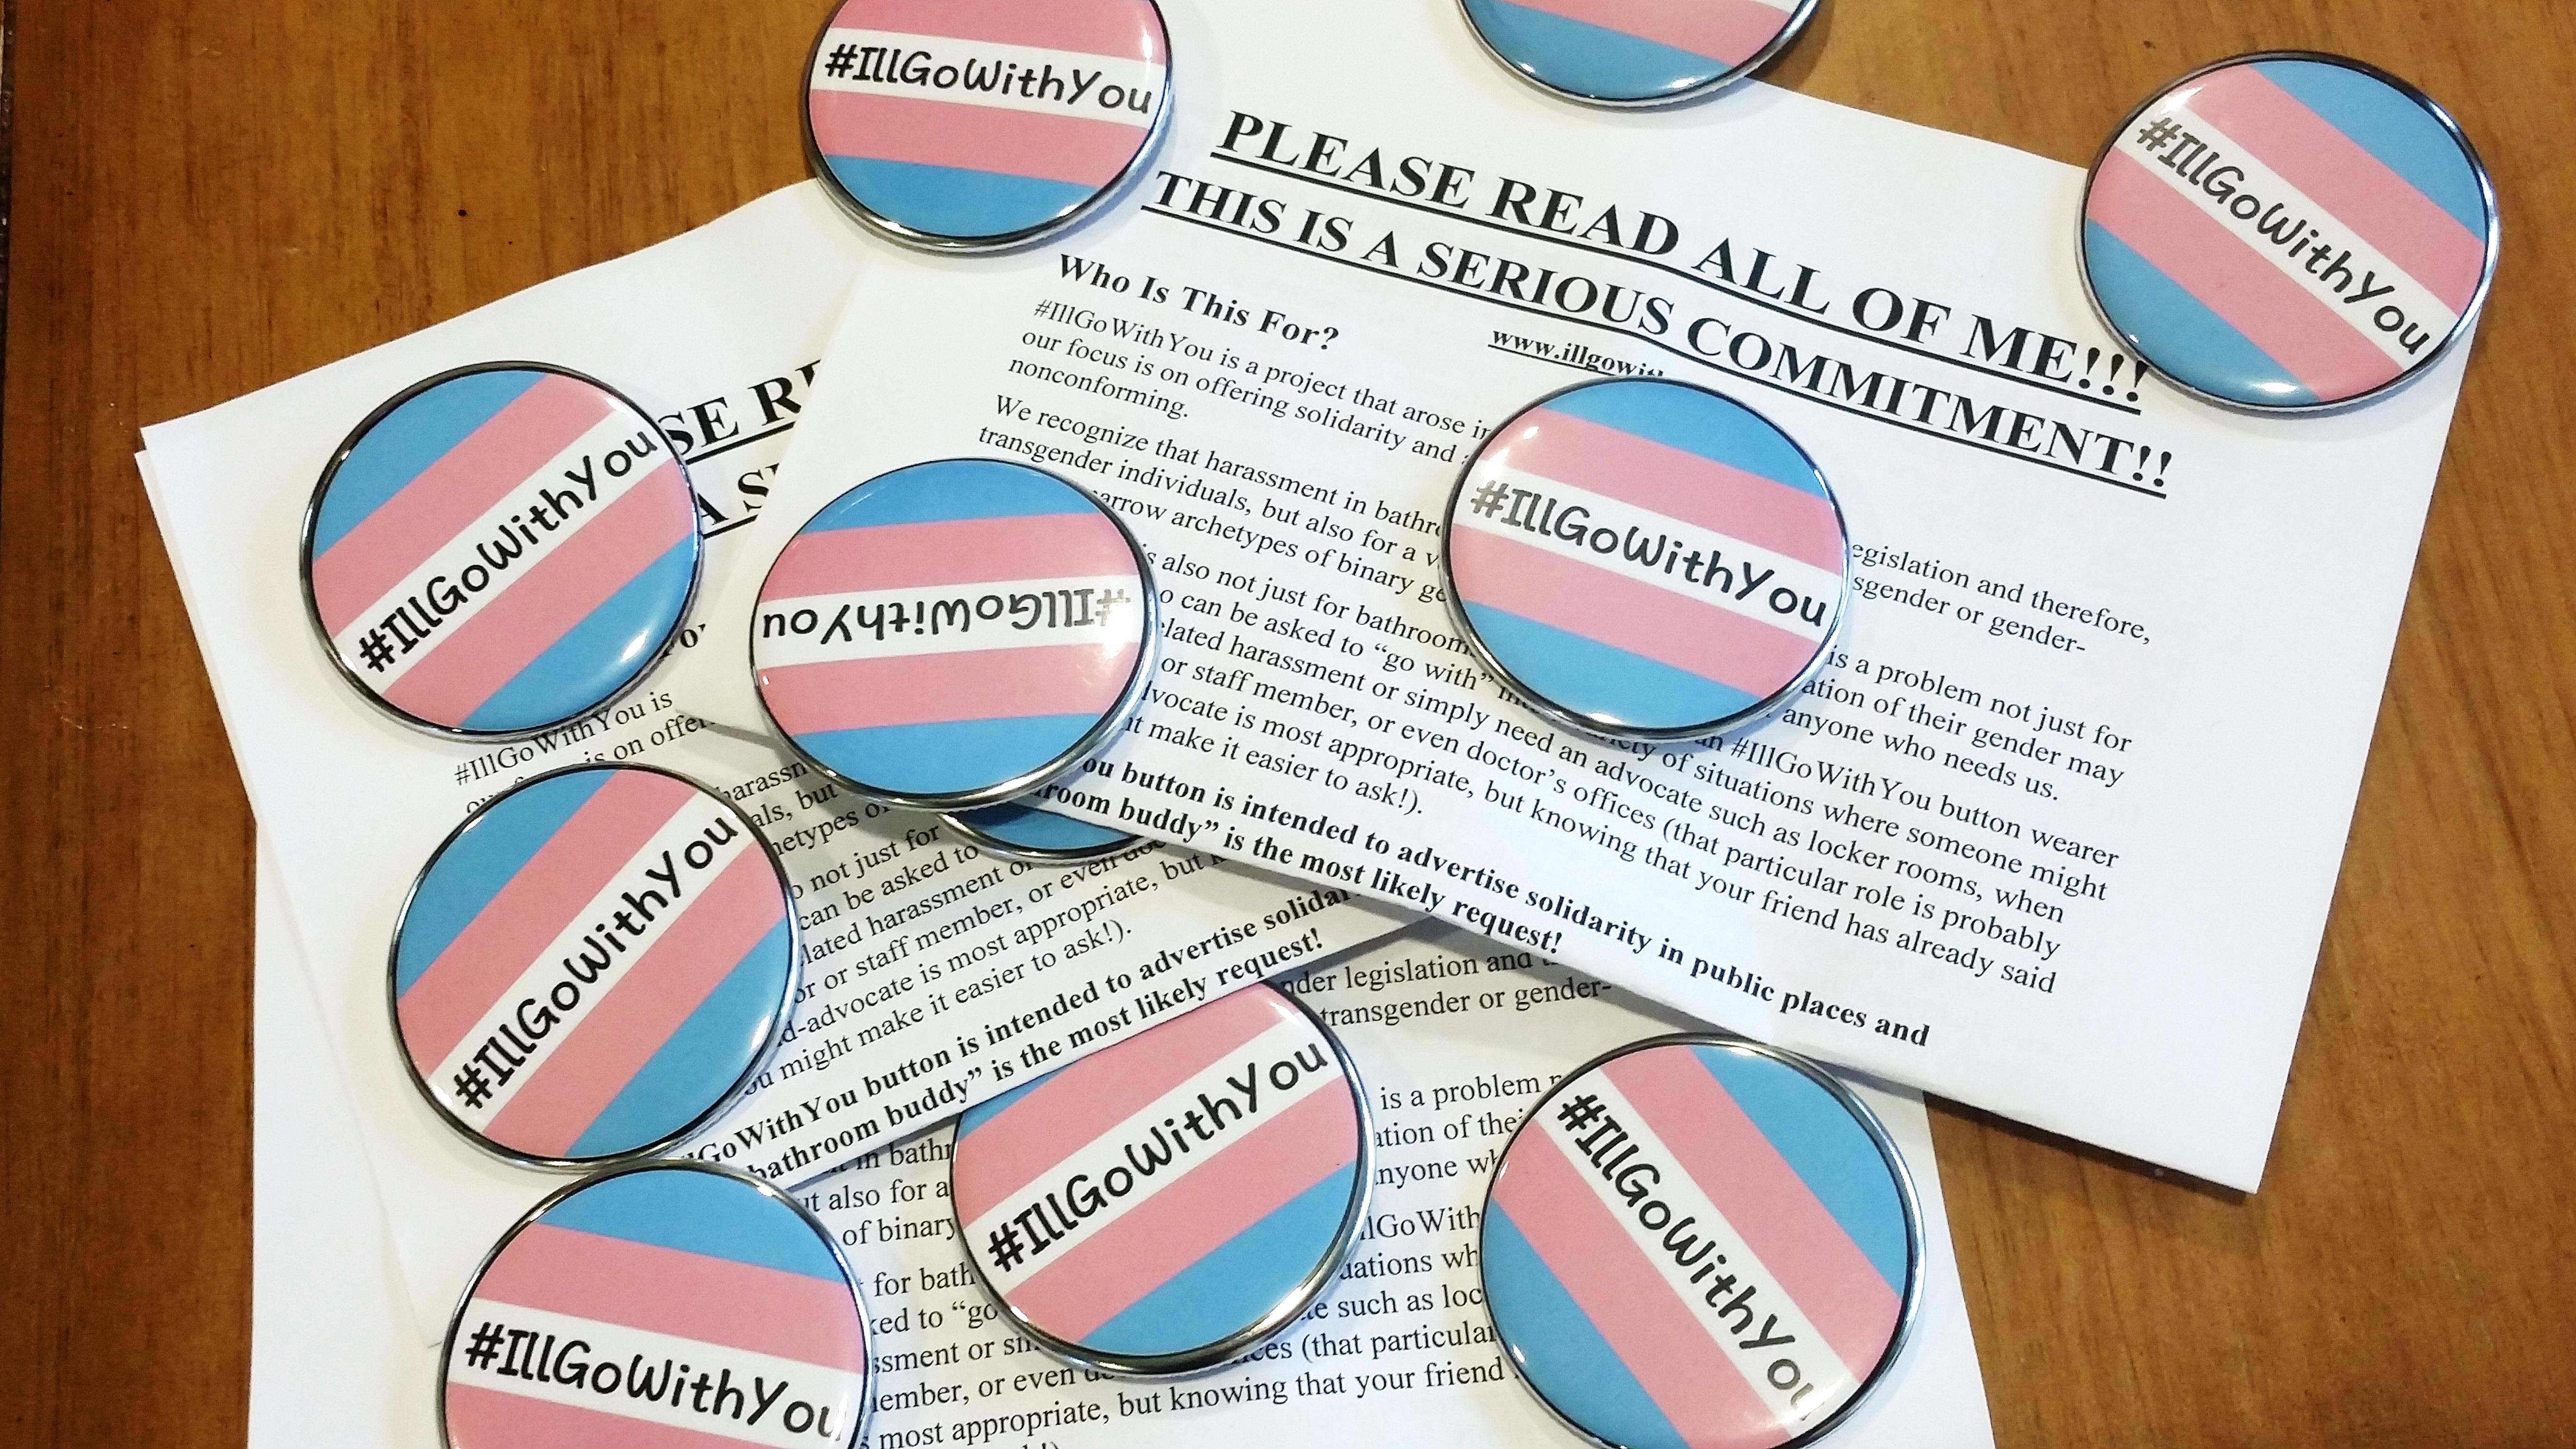 Equal Bathroom Treatment for Trans Students is Critical for Development, Brief Argues